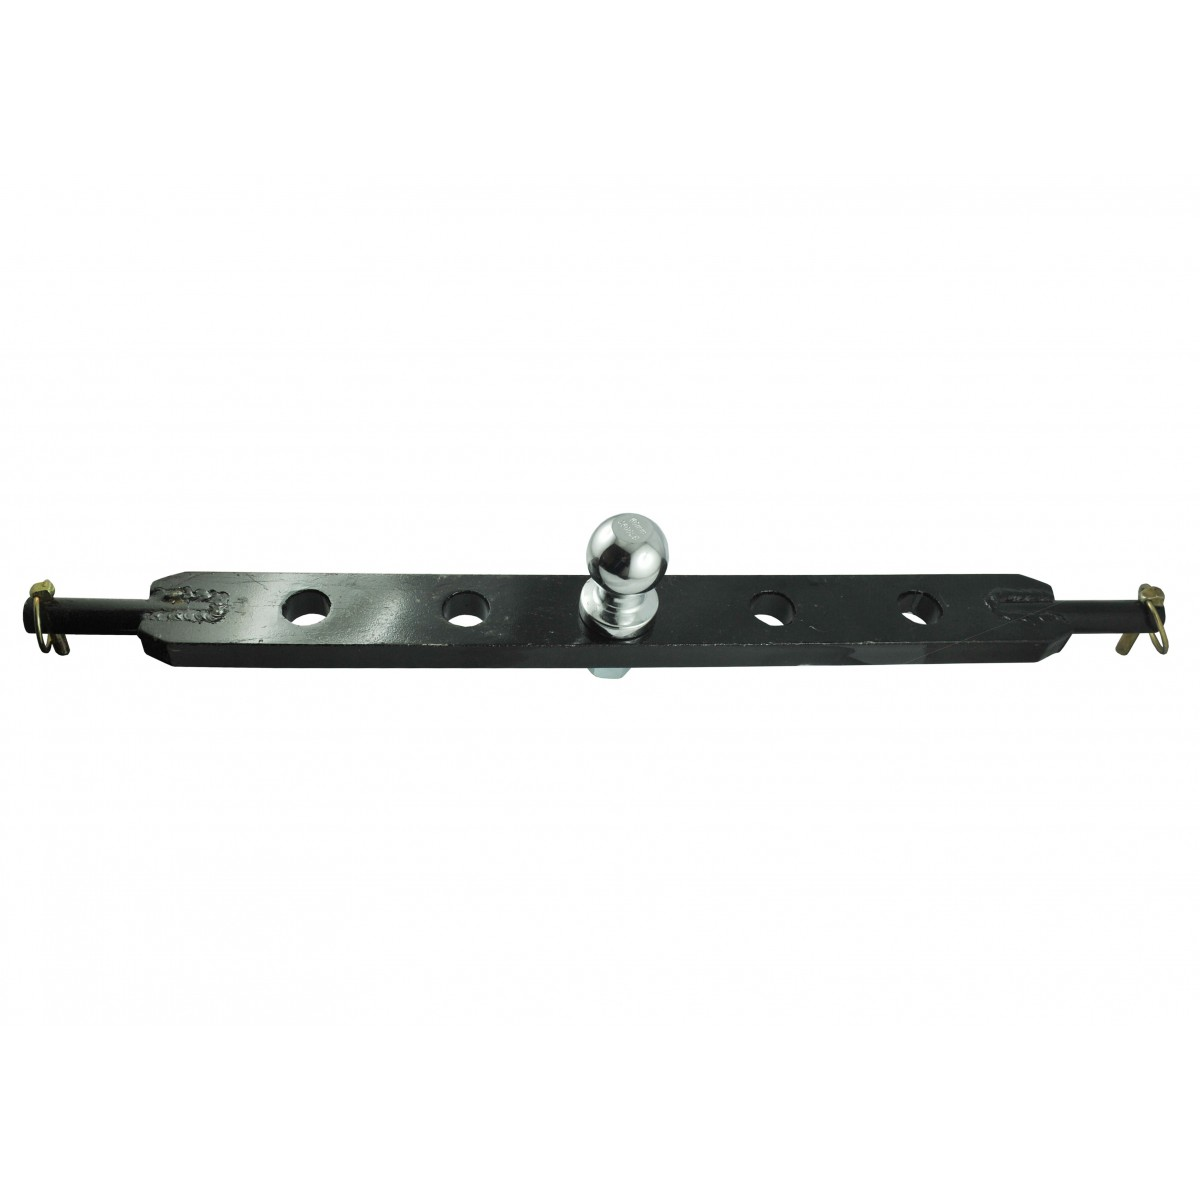 Beam + hitch ball 60 cm KAT 1 universal for three-point linkage